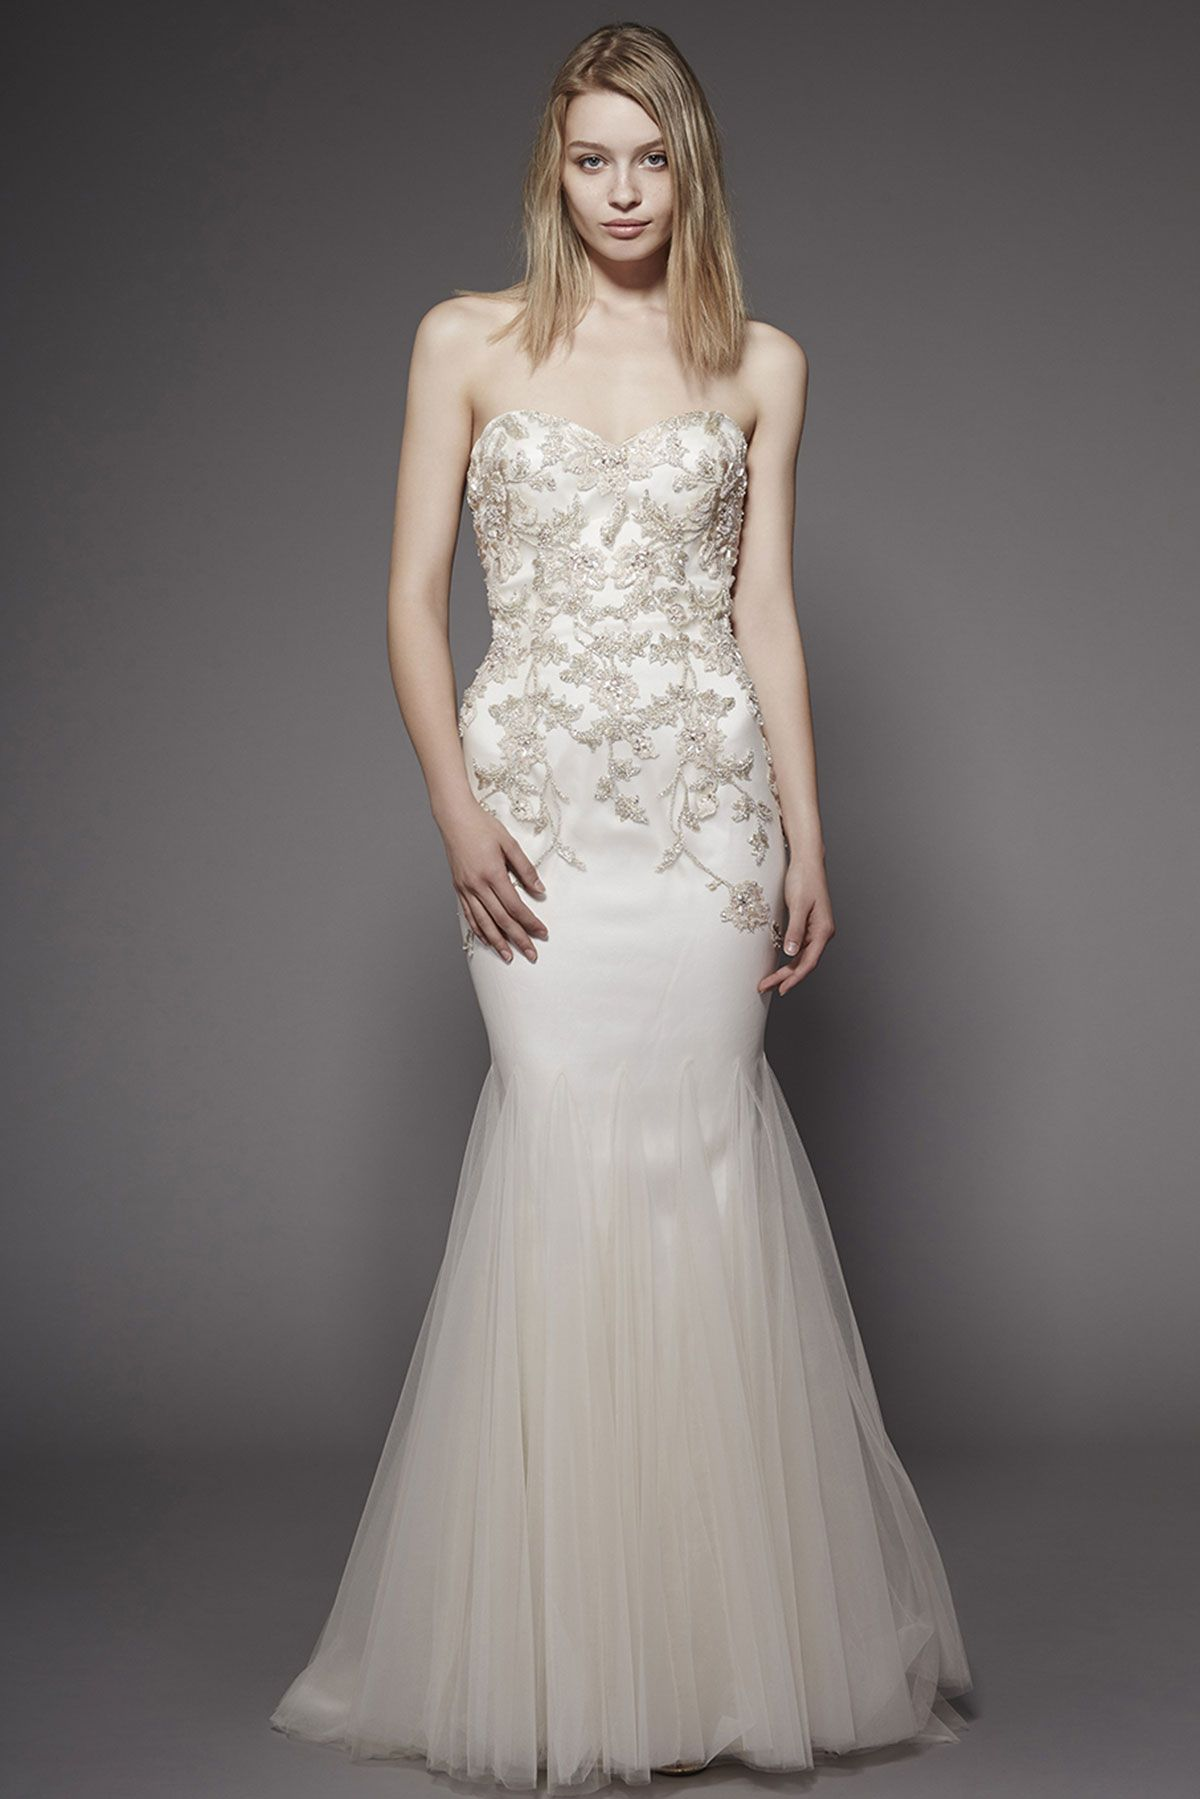 Popular Find this Pin and more on Wedding Dresses by lcrnext